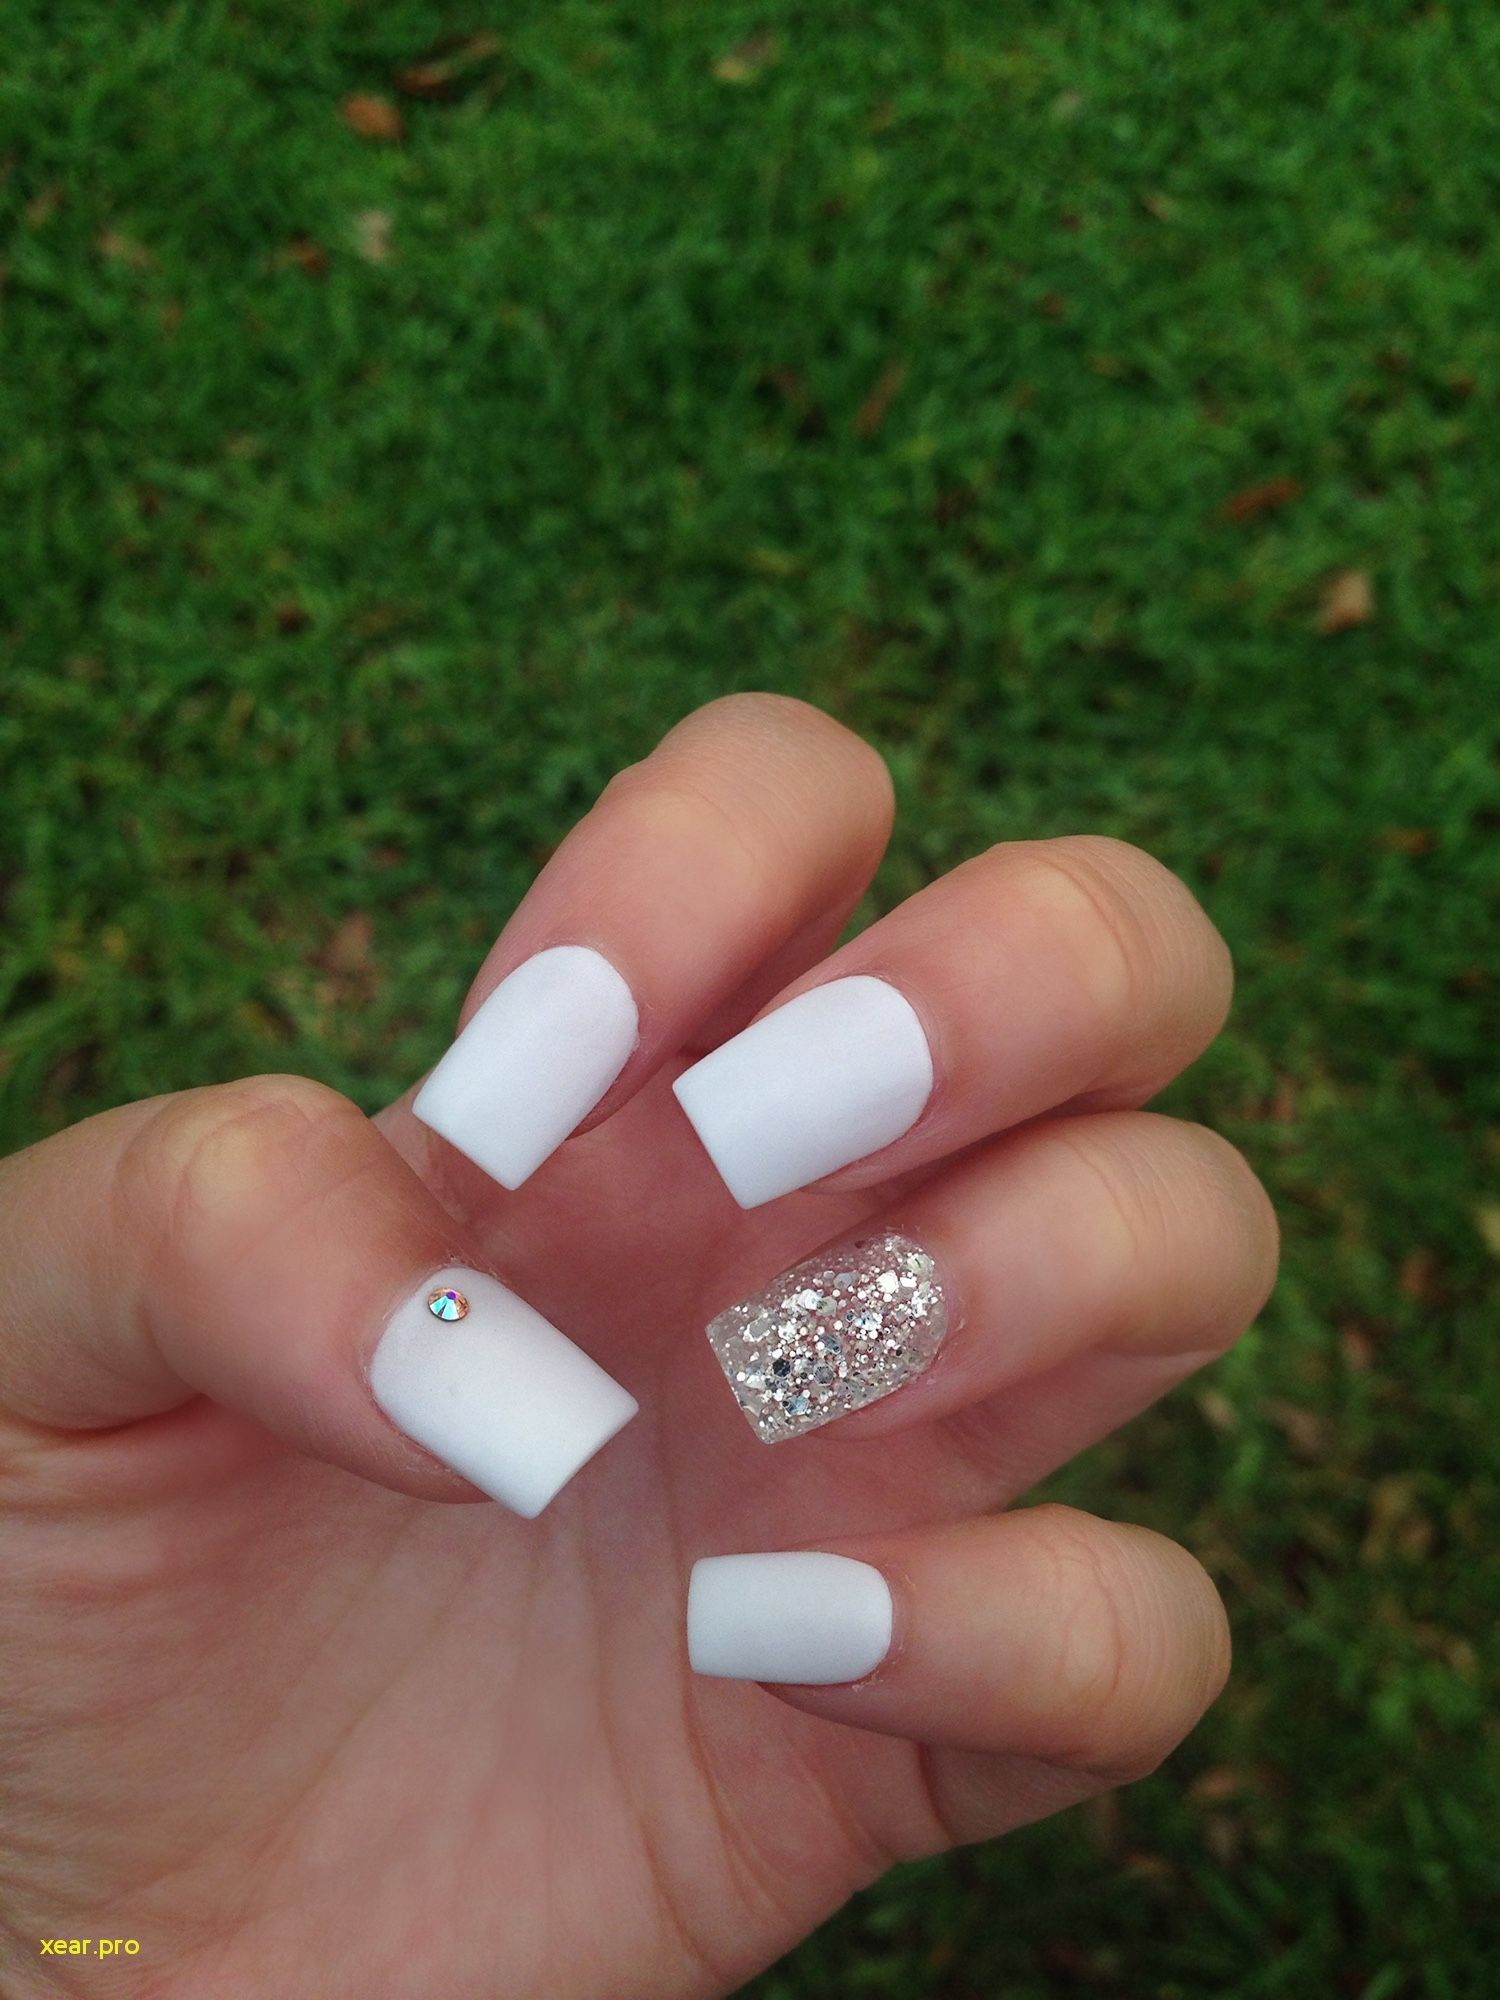 100 Top Nail Art Ideas That You Will Love In 2020 Best Acrylic Nails Nail Designs Coffin Nails Designs